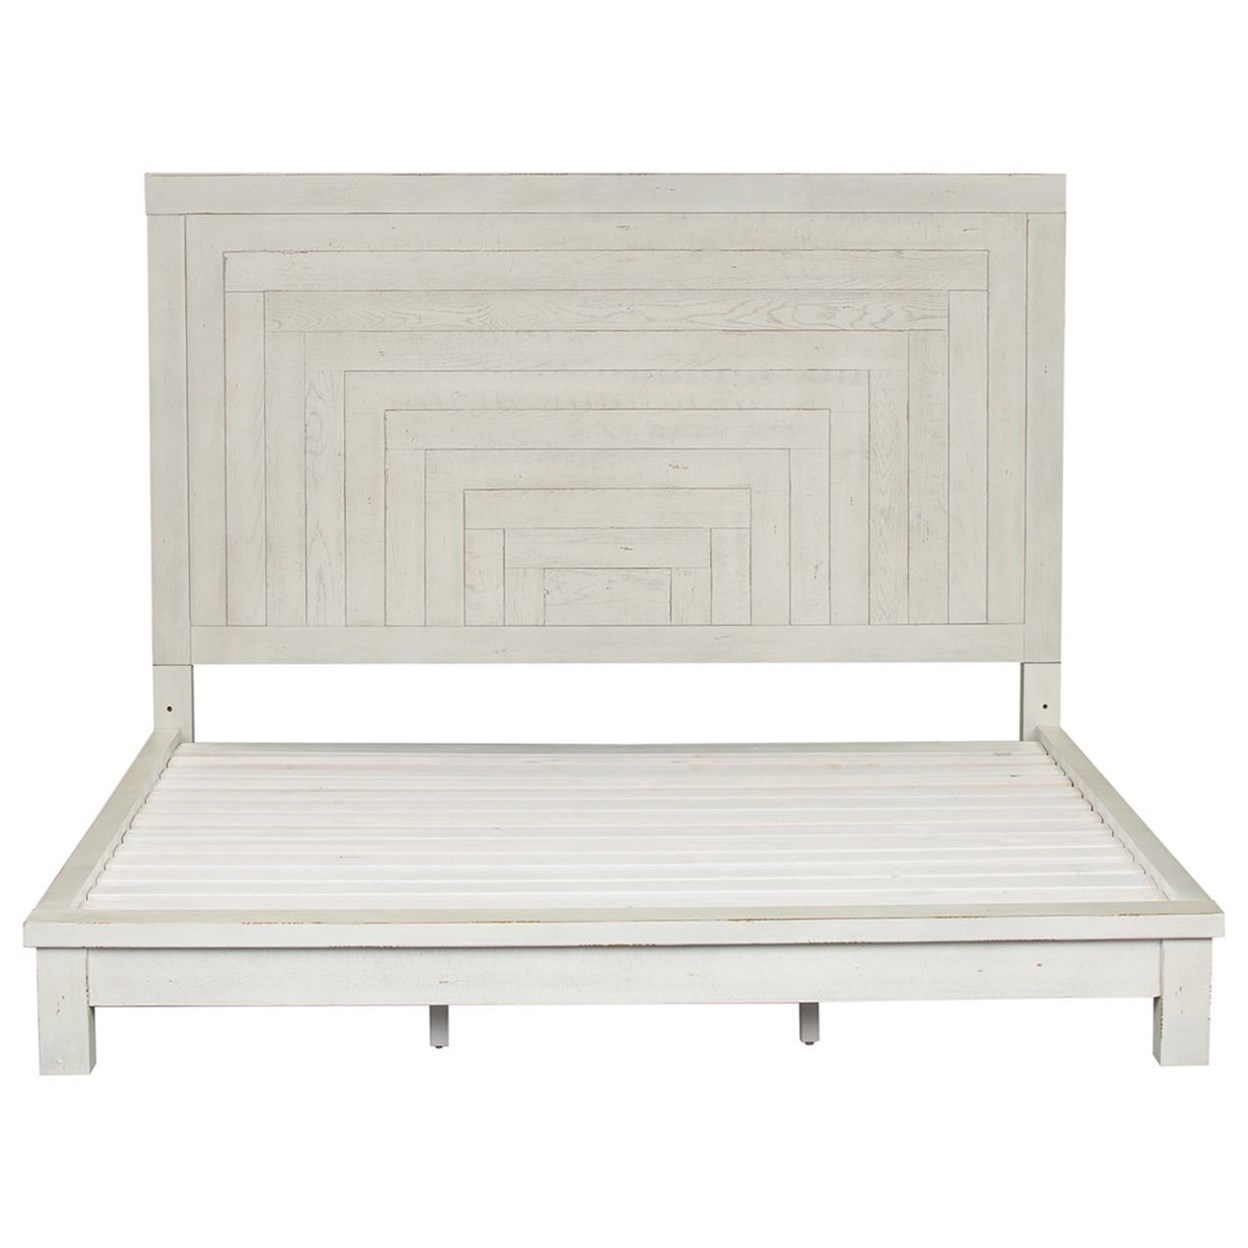 Modern Farmhouse Queen Platform bed by Libby at Walker's Furniture